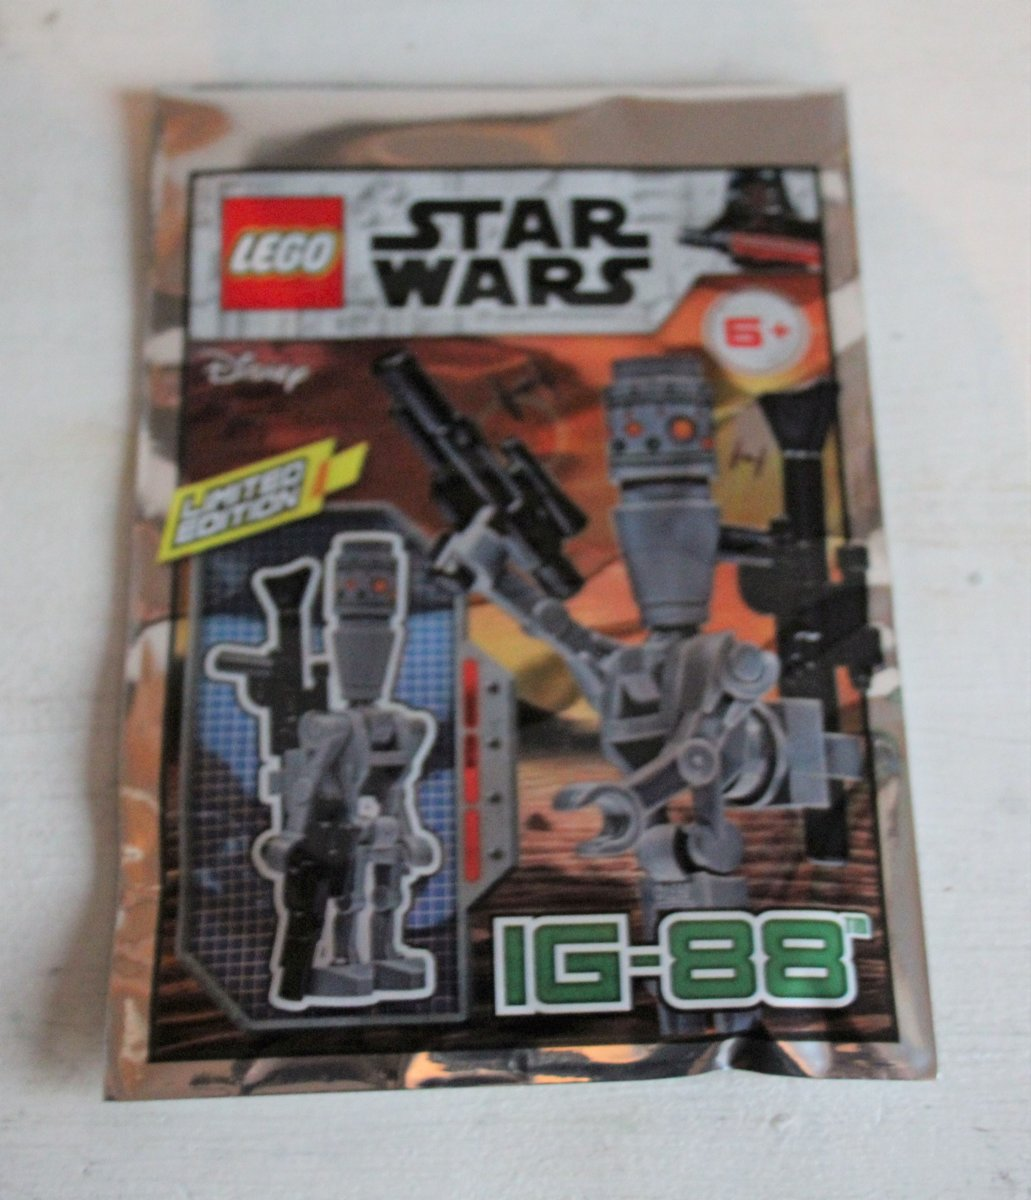 Lego Star Wars IG-88 (polybag)